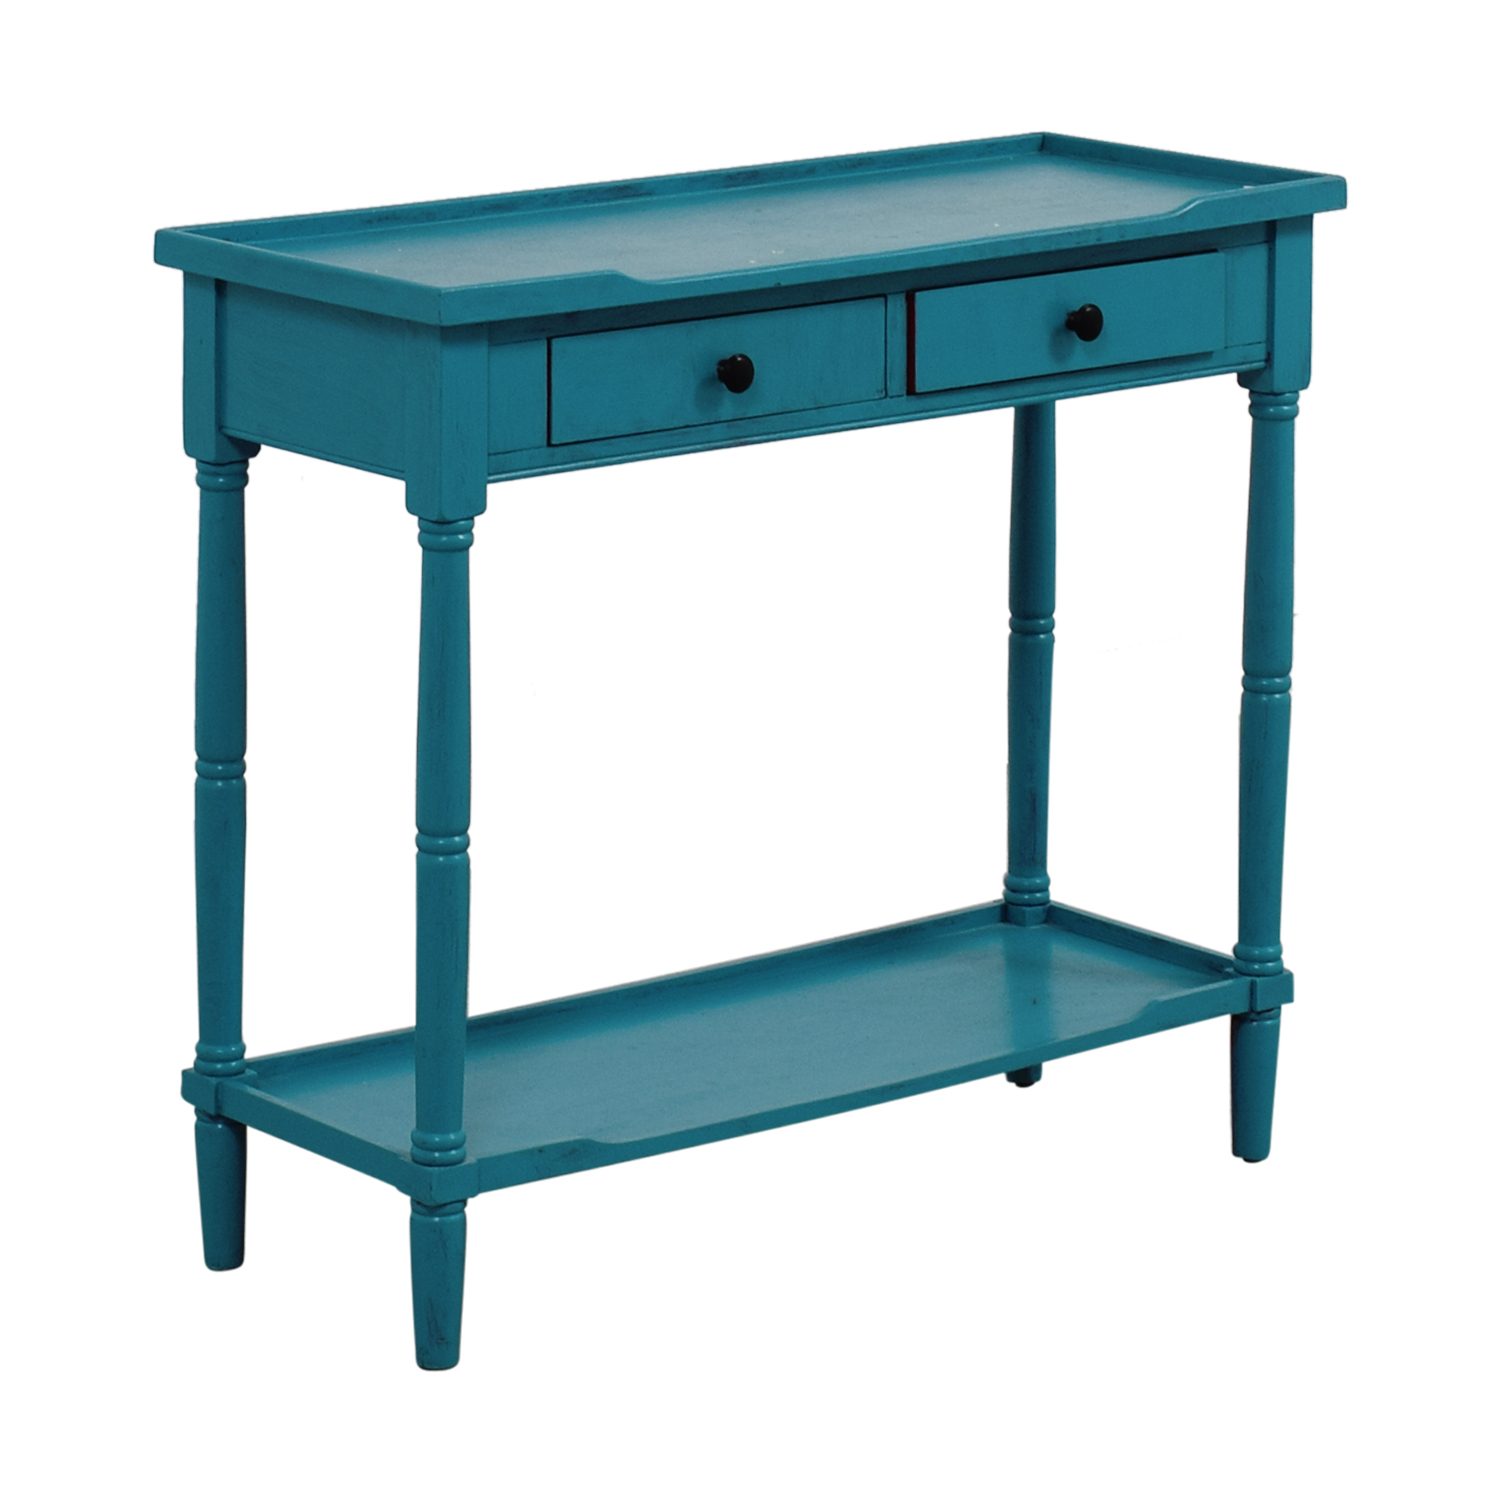 Home Goods Foyer Table : Off homegoods teal entryway table tables